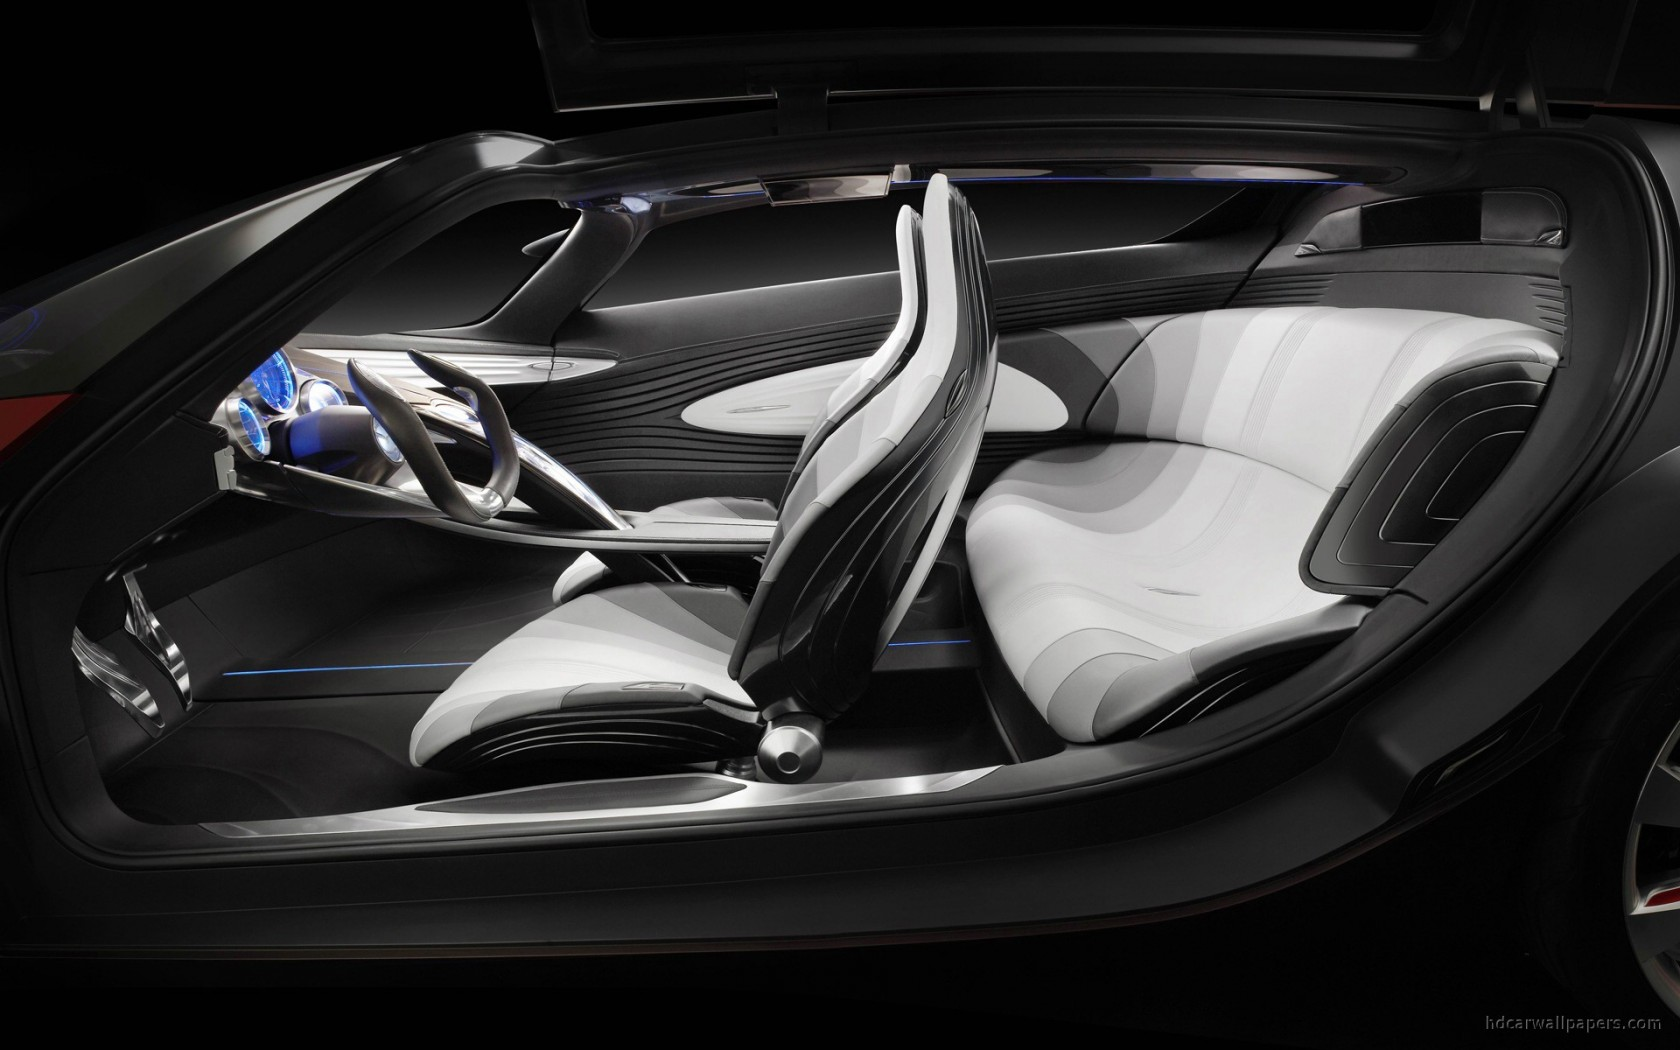 Mazda Ryuga Concept Interior Wallpaper | HD Car Wallpapers ...